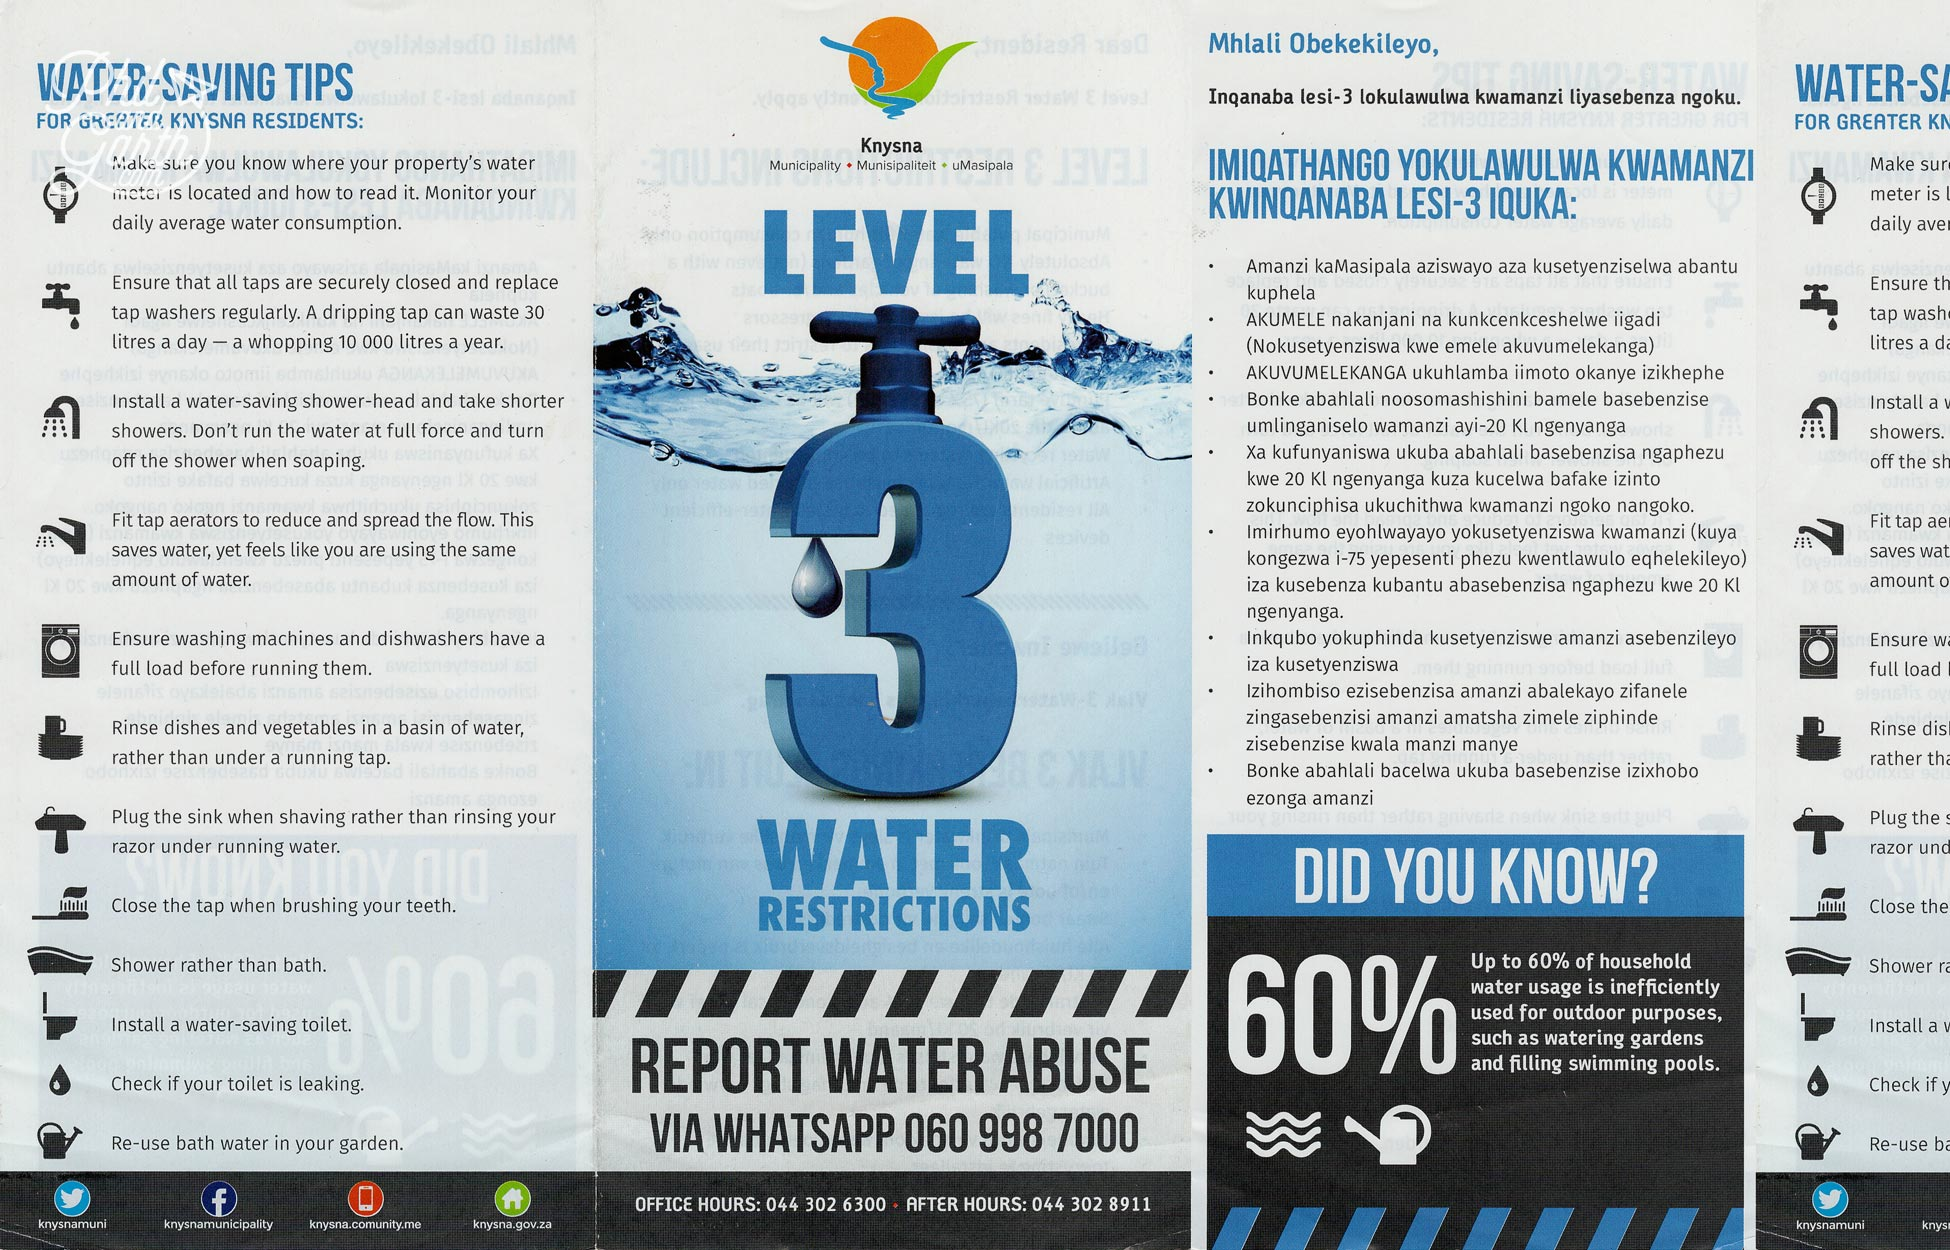 A Level 3 water restriction leaflet in our room